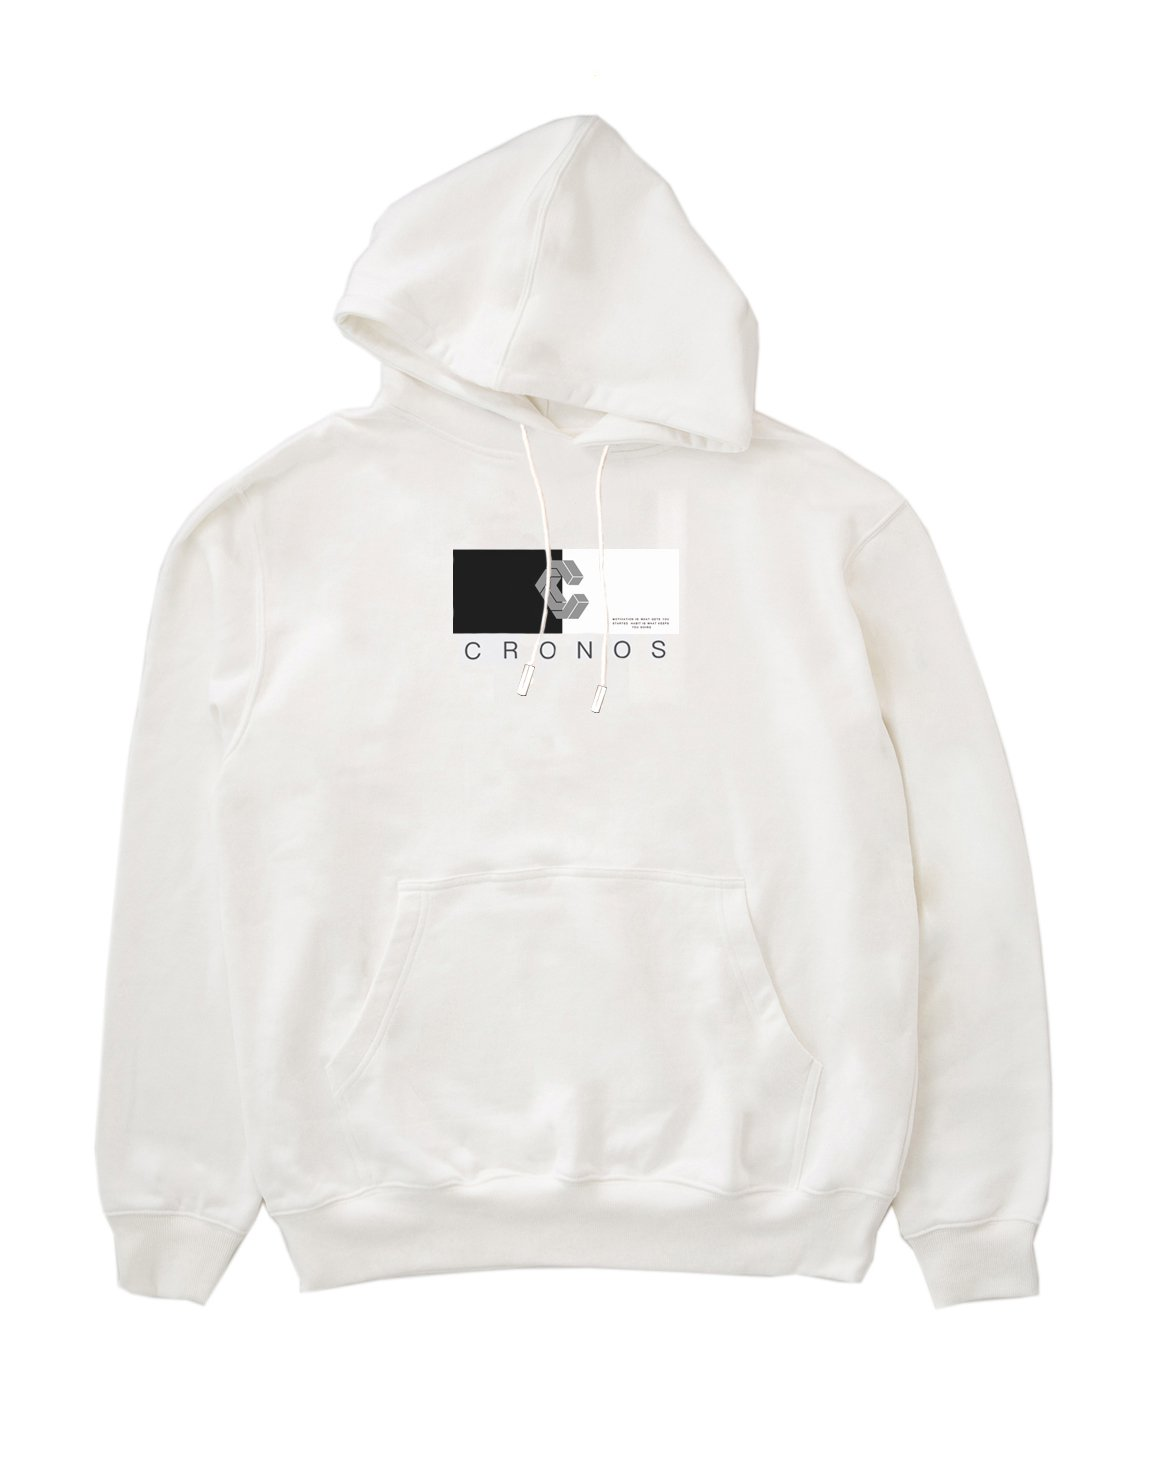 <img class='new_mark_img1' src='https://img.shop-pro.jp/img/new/icons55.gif' style='border:none;display:inline;margin:0px;padding:0px;width:auto;' />CRONOS HALF COLOR HOODY 【WHITE】